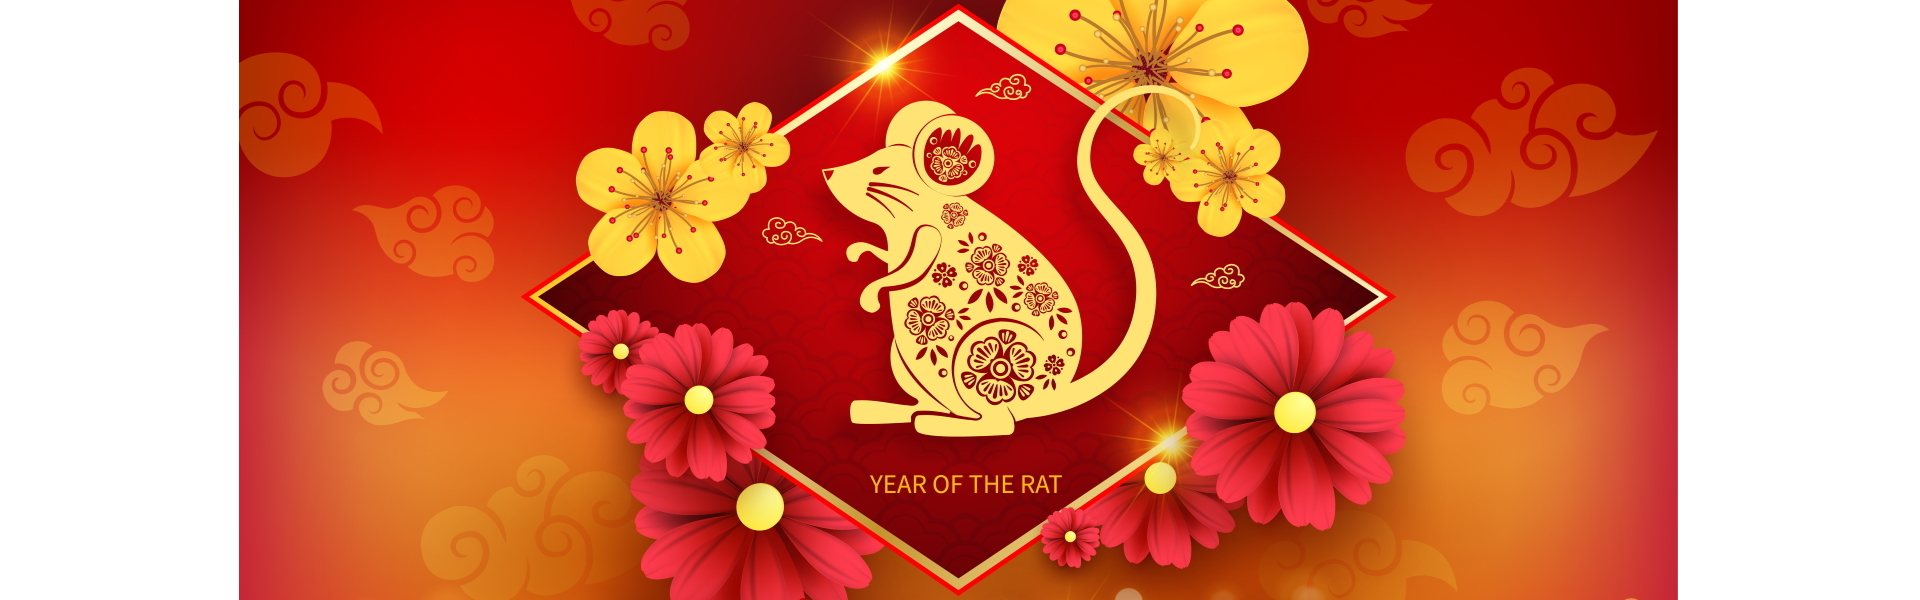 CNY2020 banners